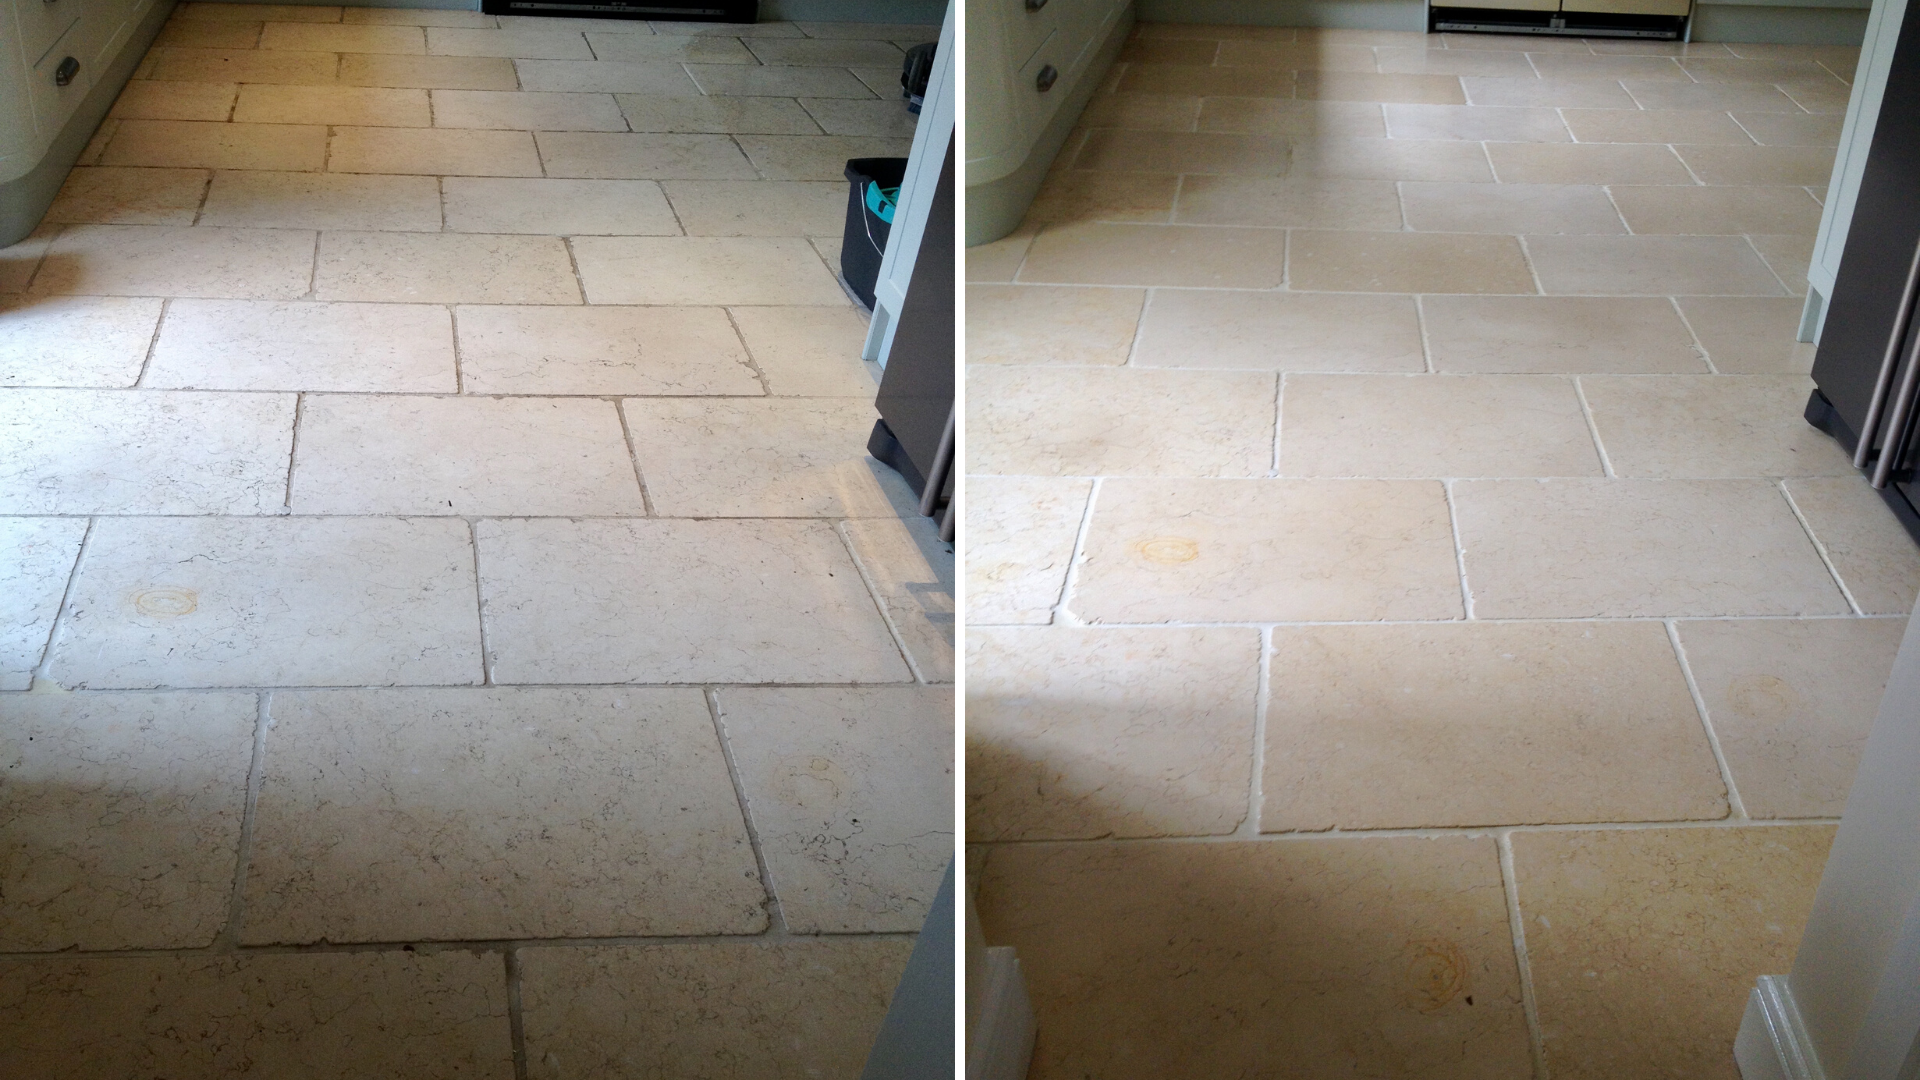 Limestone floor before and after cleaning